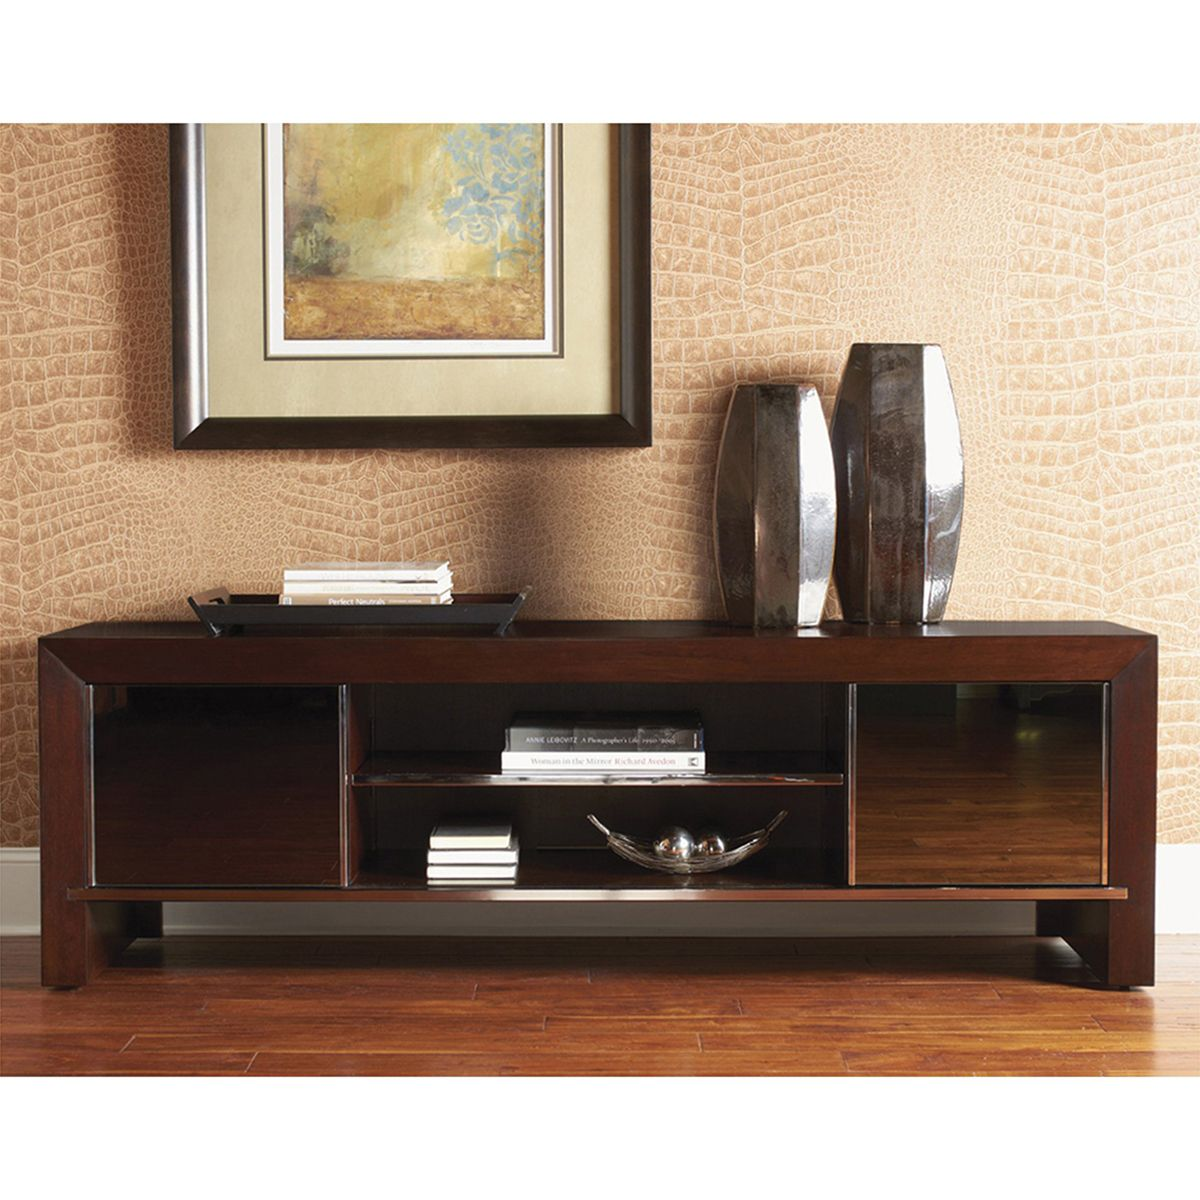 TV Console   Bold By Design Yet Ultra Practical, The Sligh Studio Designs  Meridian 76 In. TV Console Elevates Your Living Room To Contemporary Home  Theater. Home Design Ideas